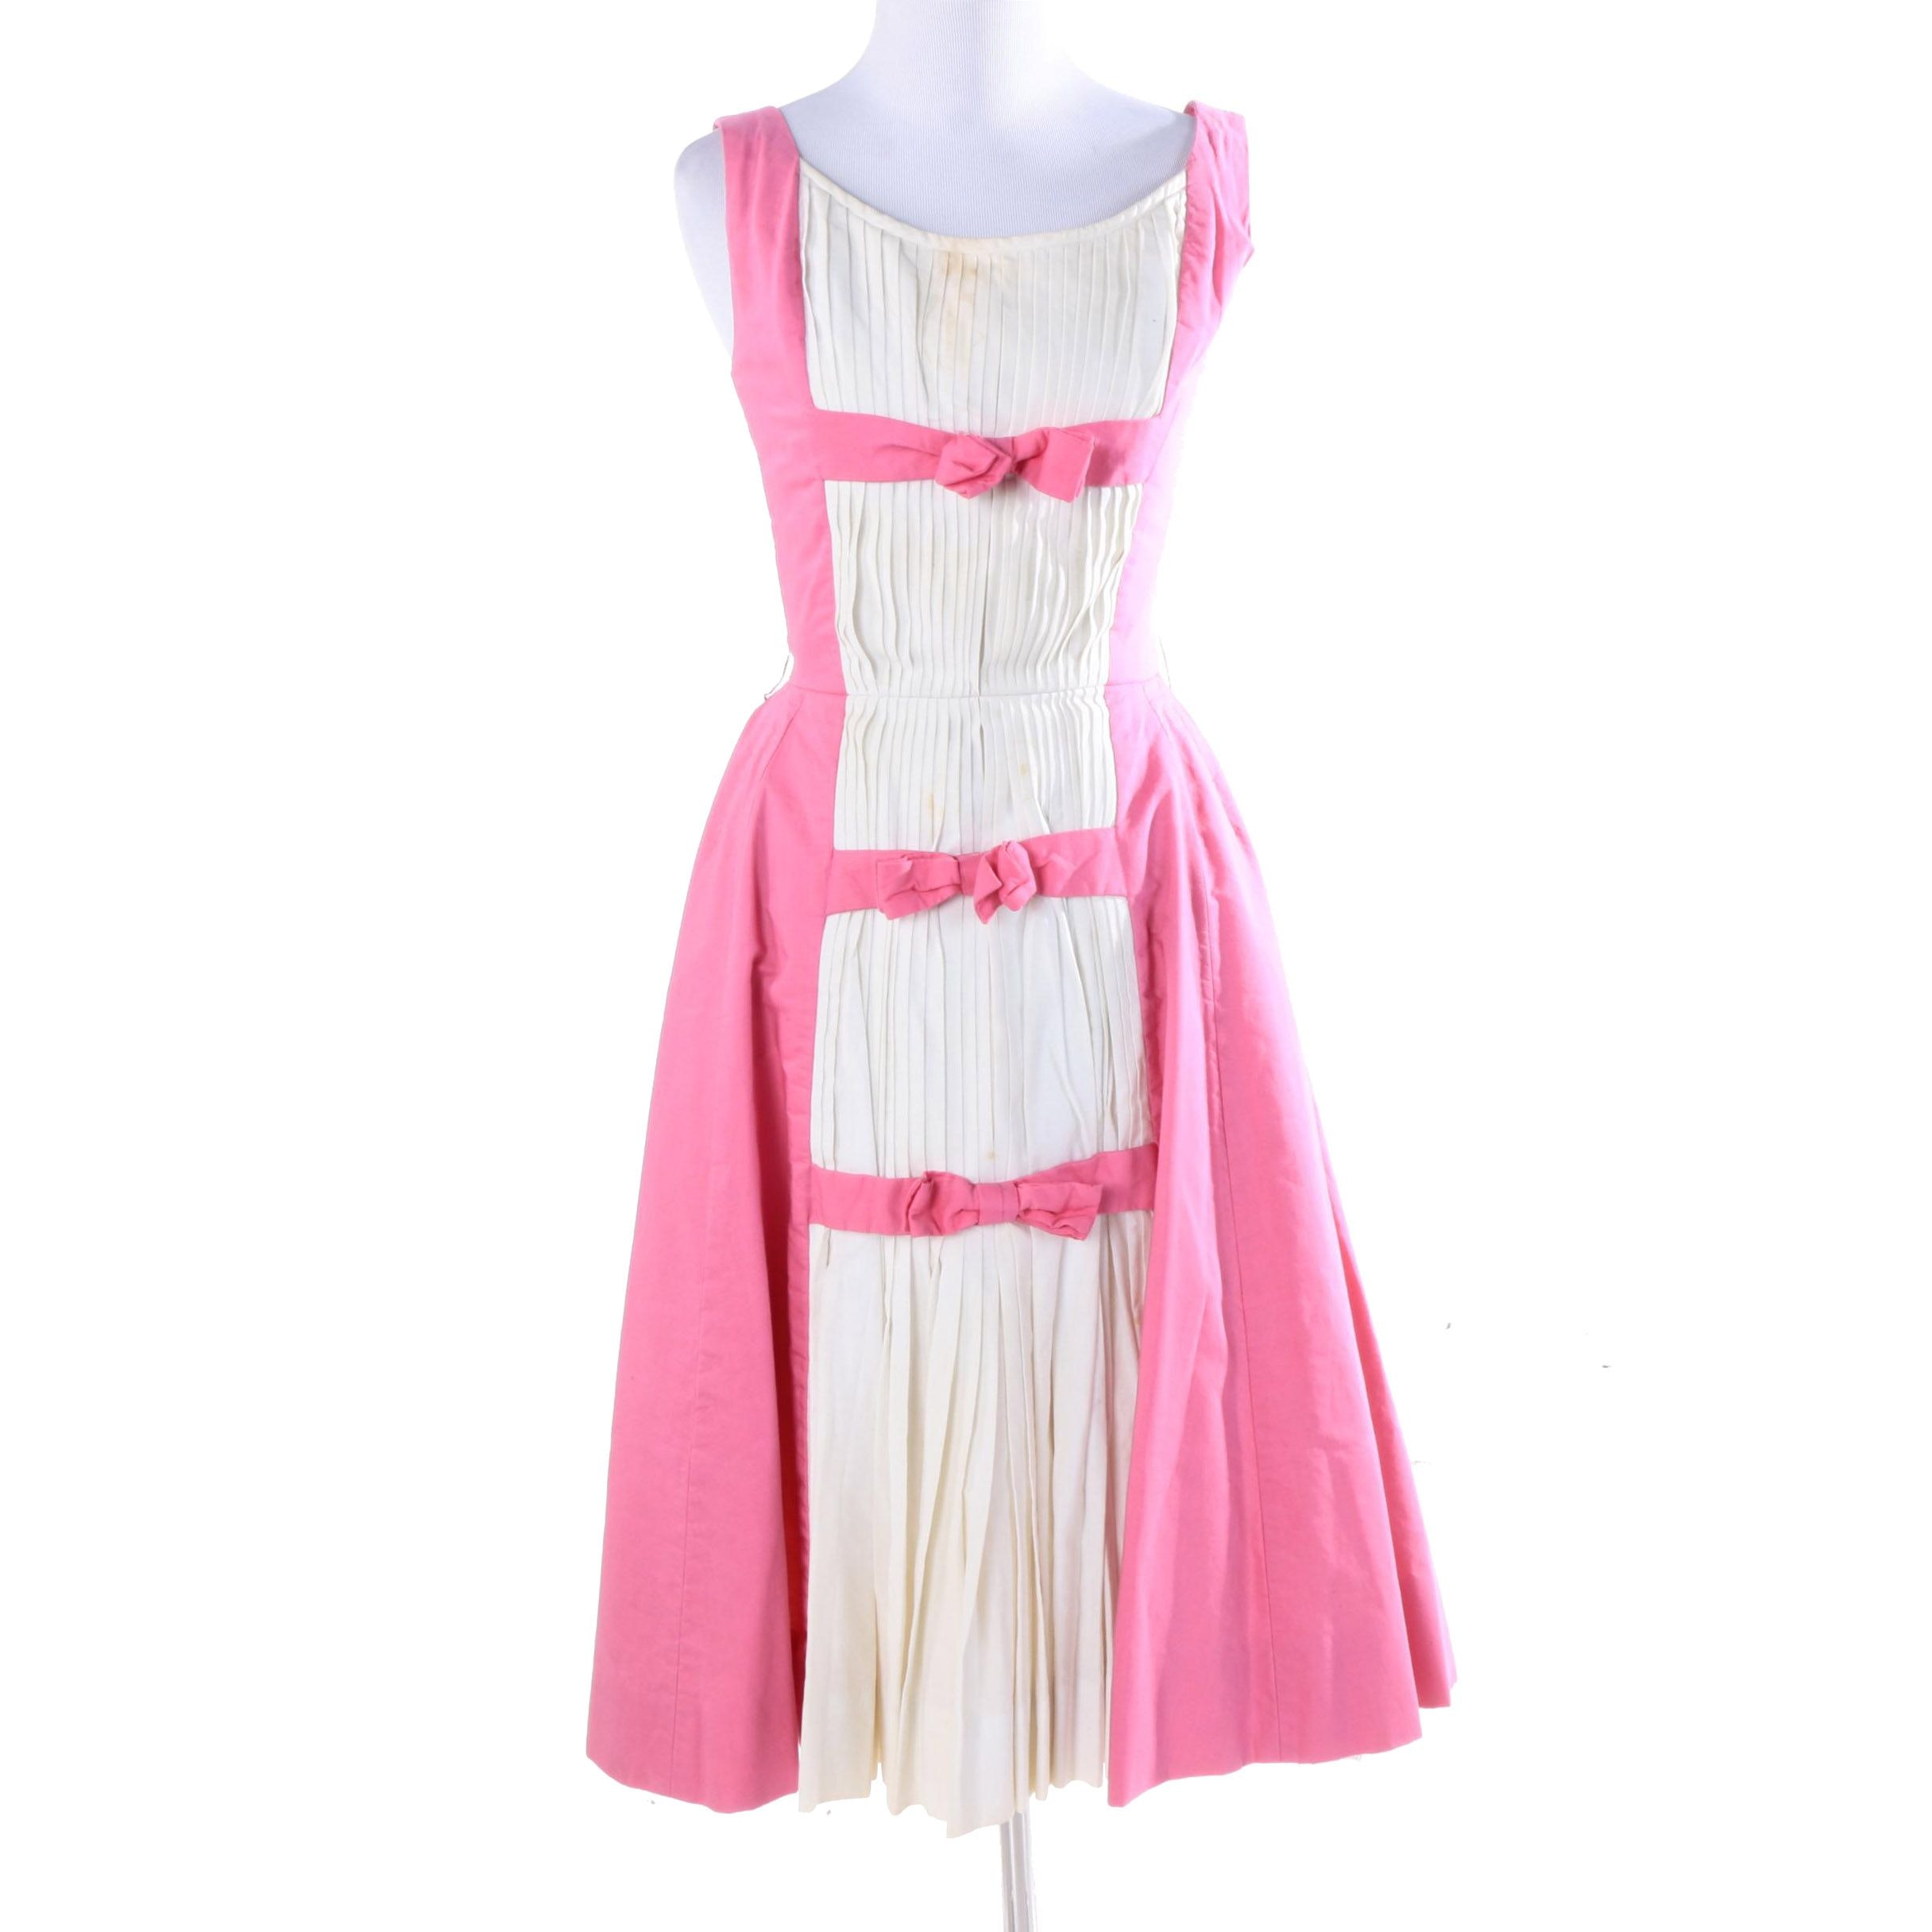 1950s Suzy Perette Pink and White Tea Dress